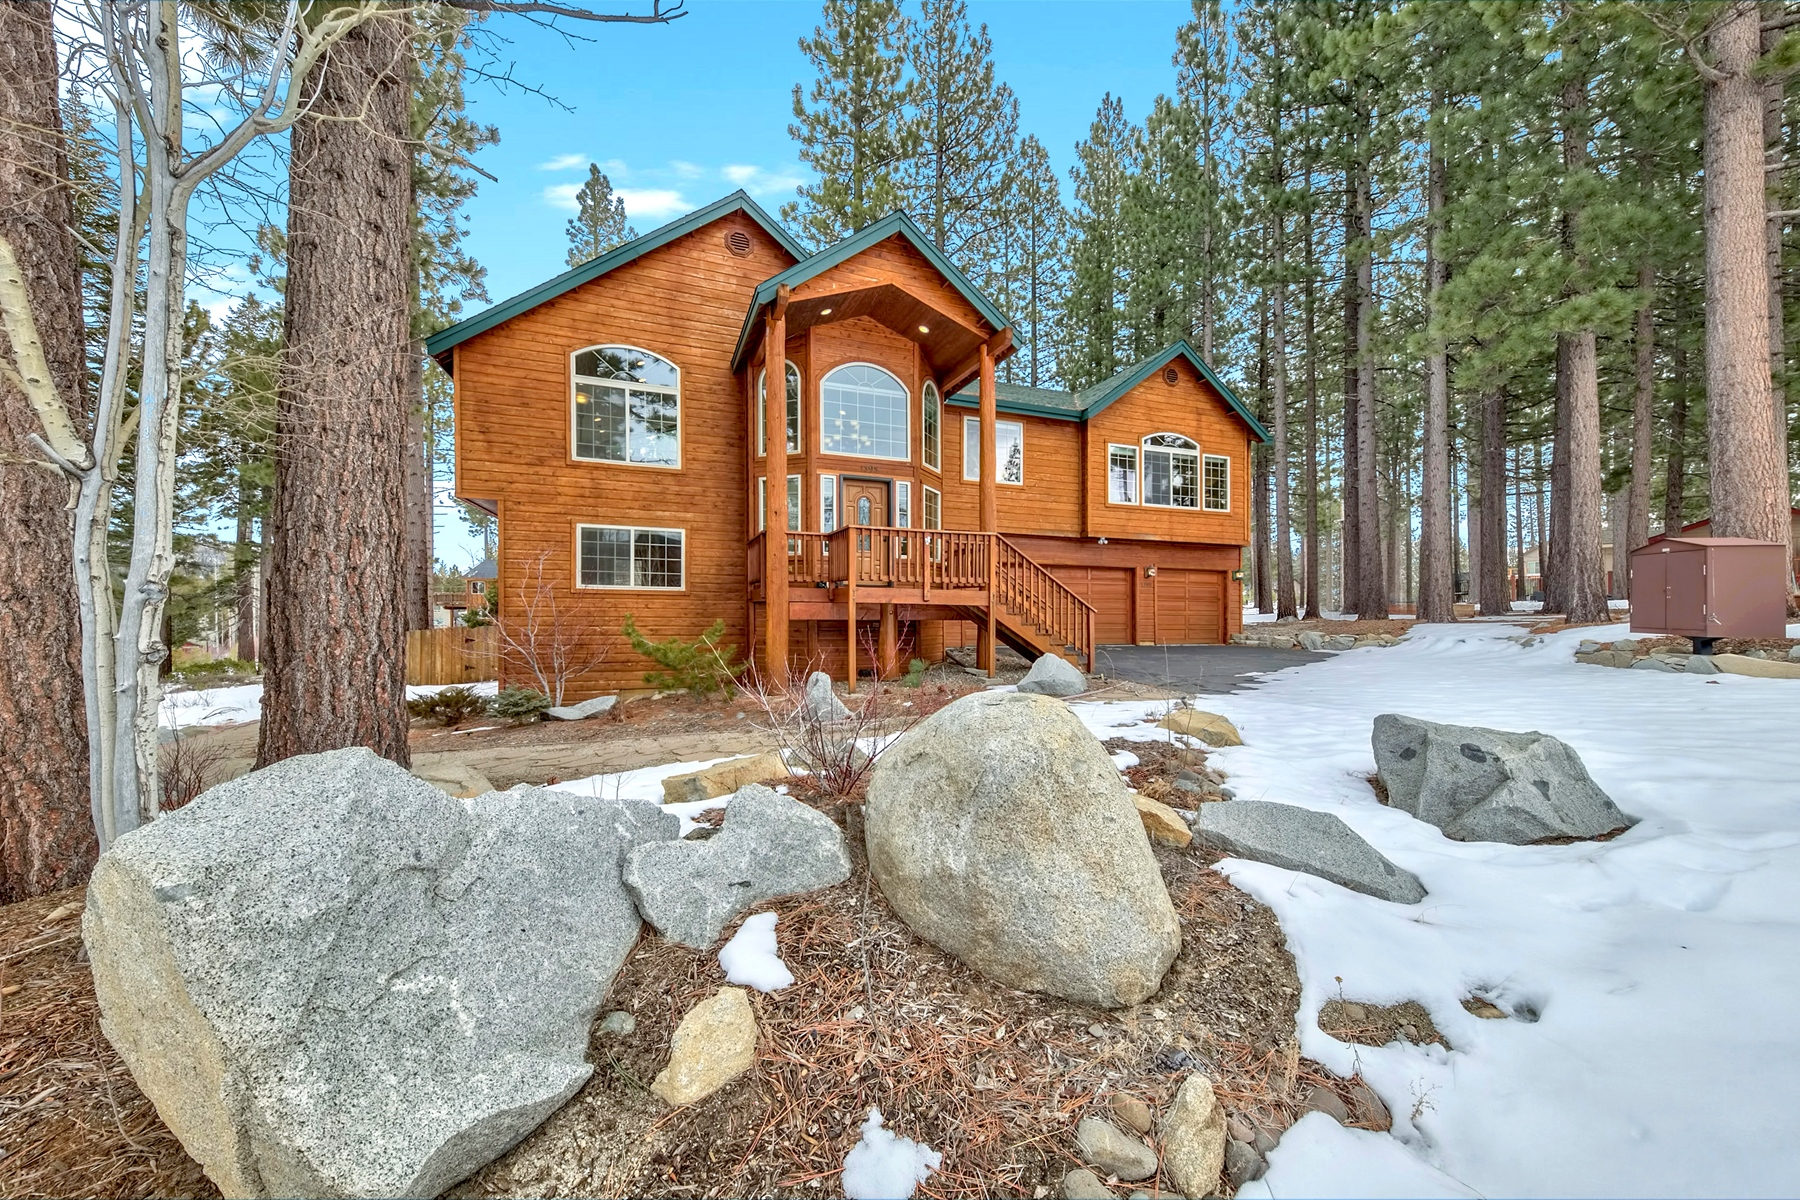 Single Family Home for Active at 1395 Mount Rainier, South Lake Tahoe, CA 96150 1395 Mount Rainier Drive South Lake Tahoe, California 96150 United States